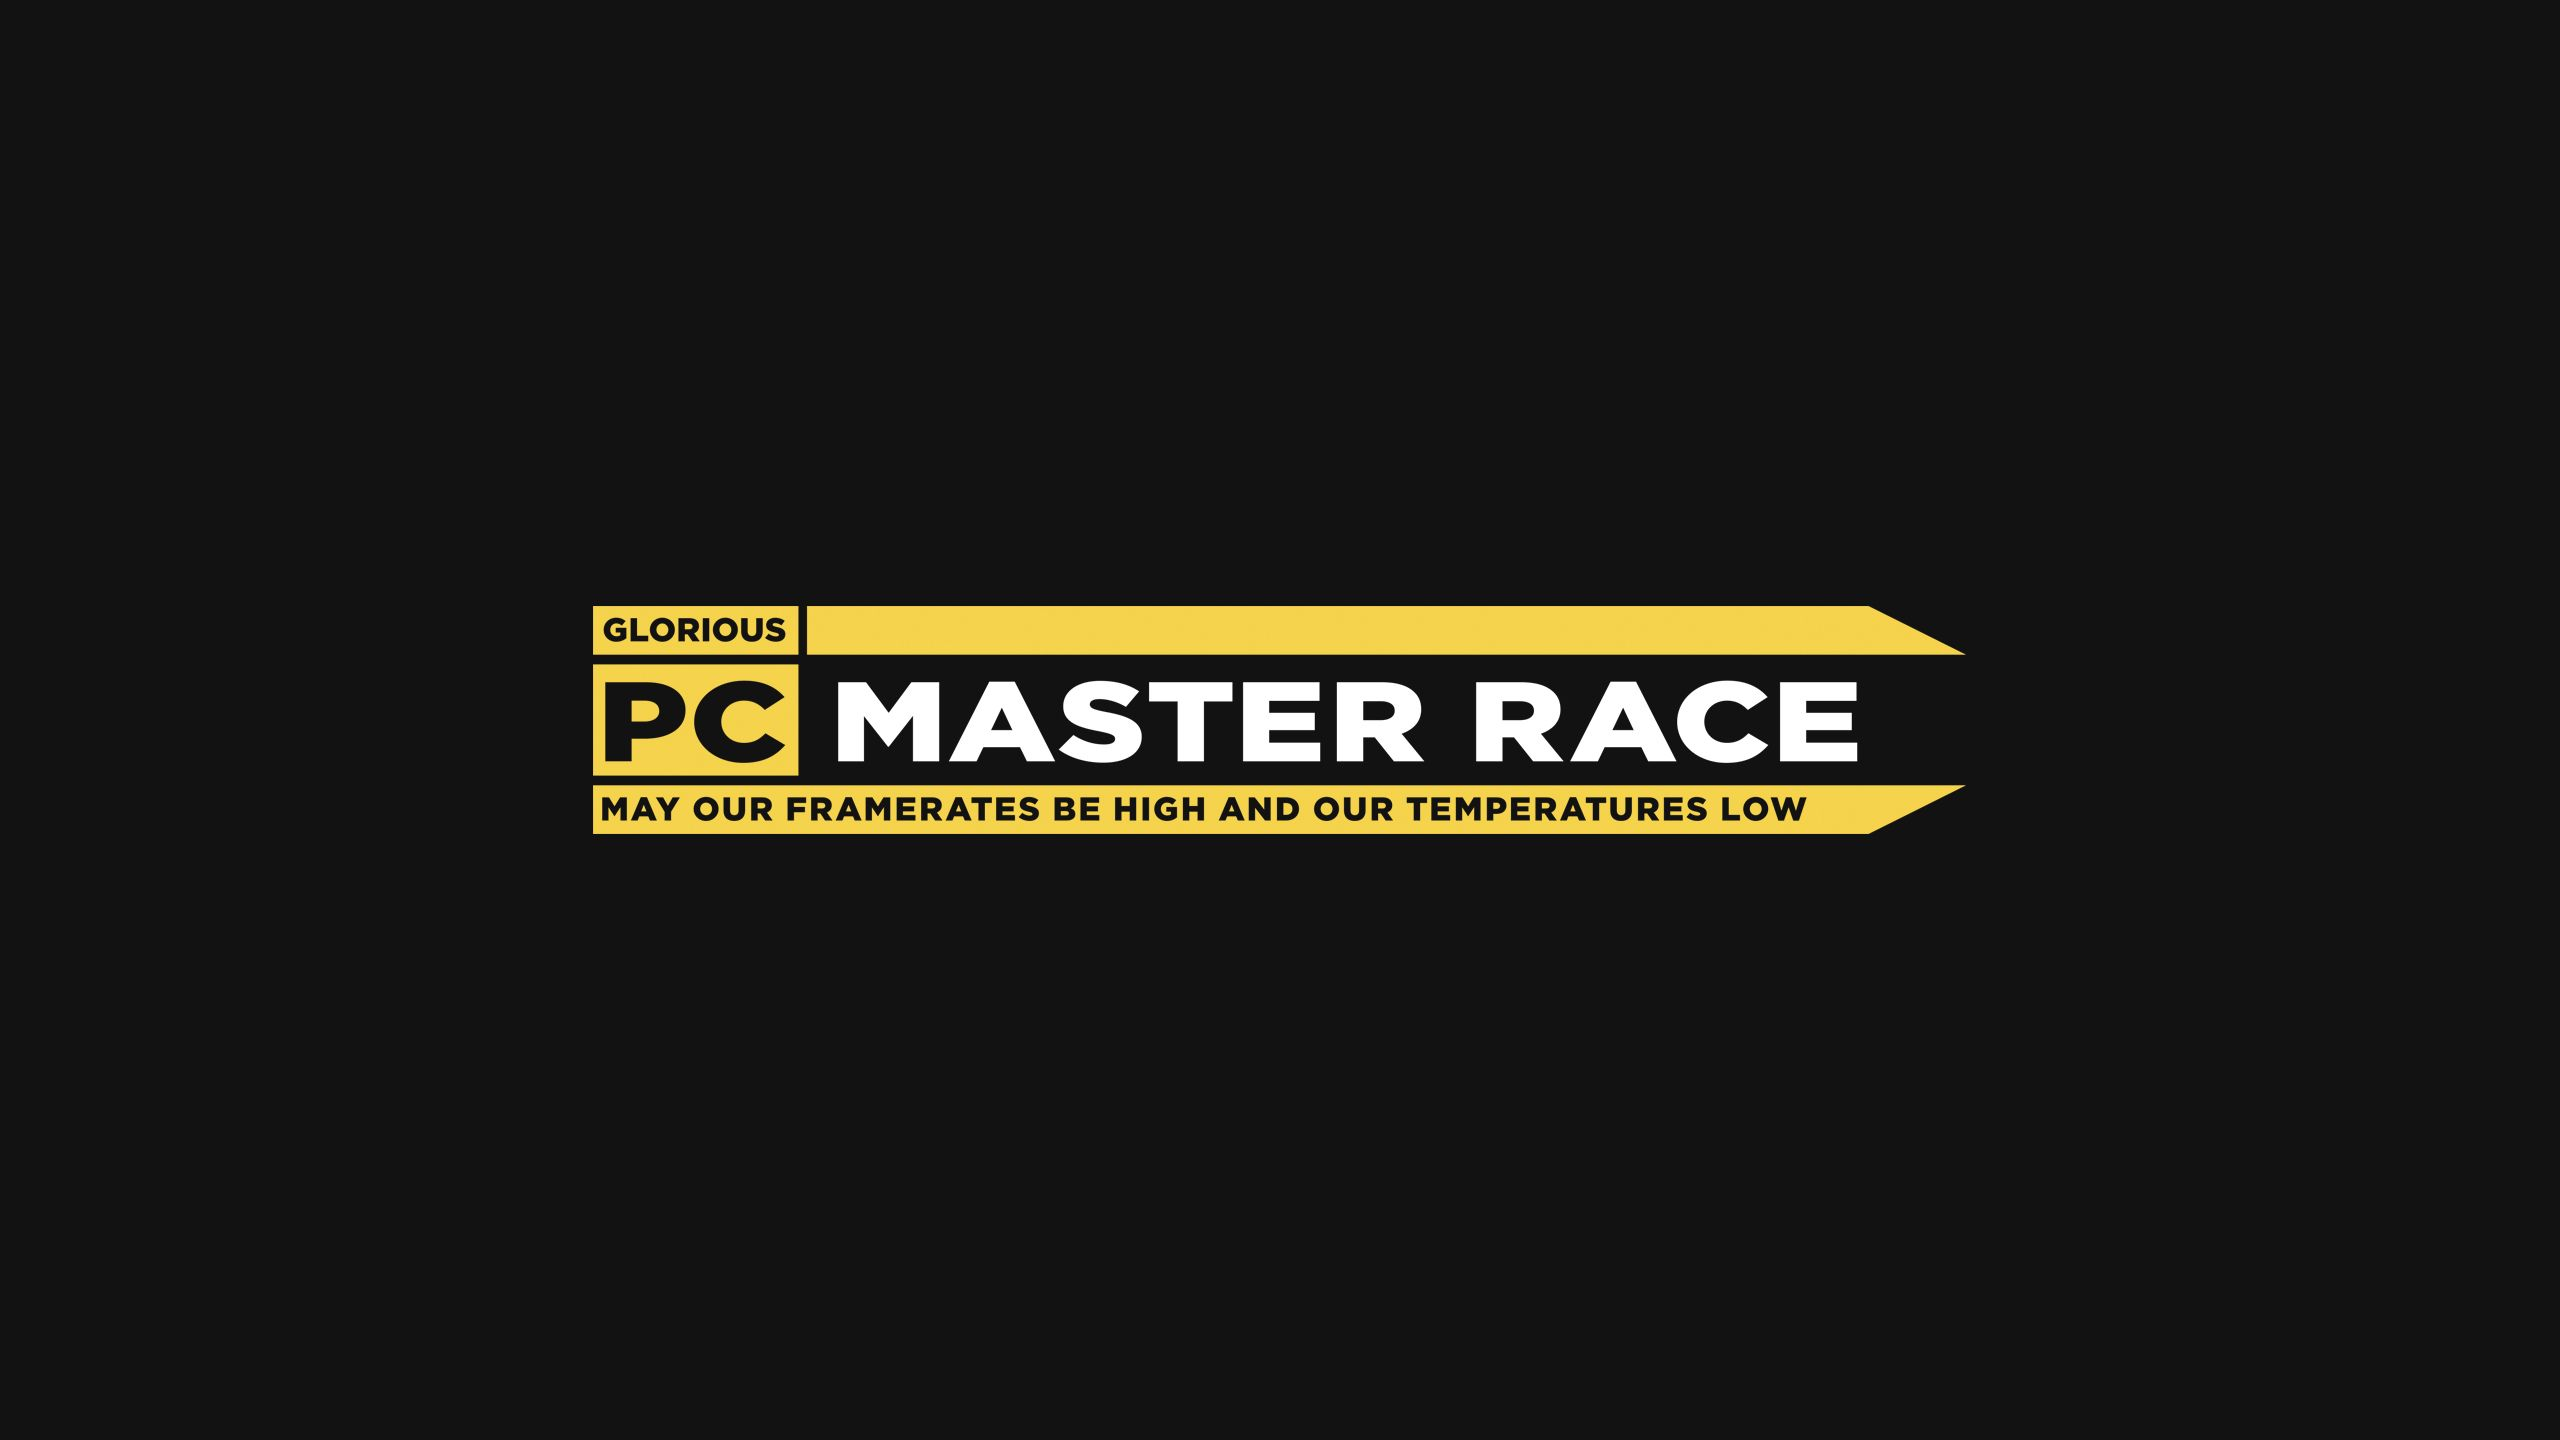 Pcmr Logo 2560x1440 Xpost From R Pcmasterrace Logos